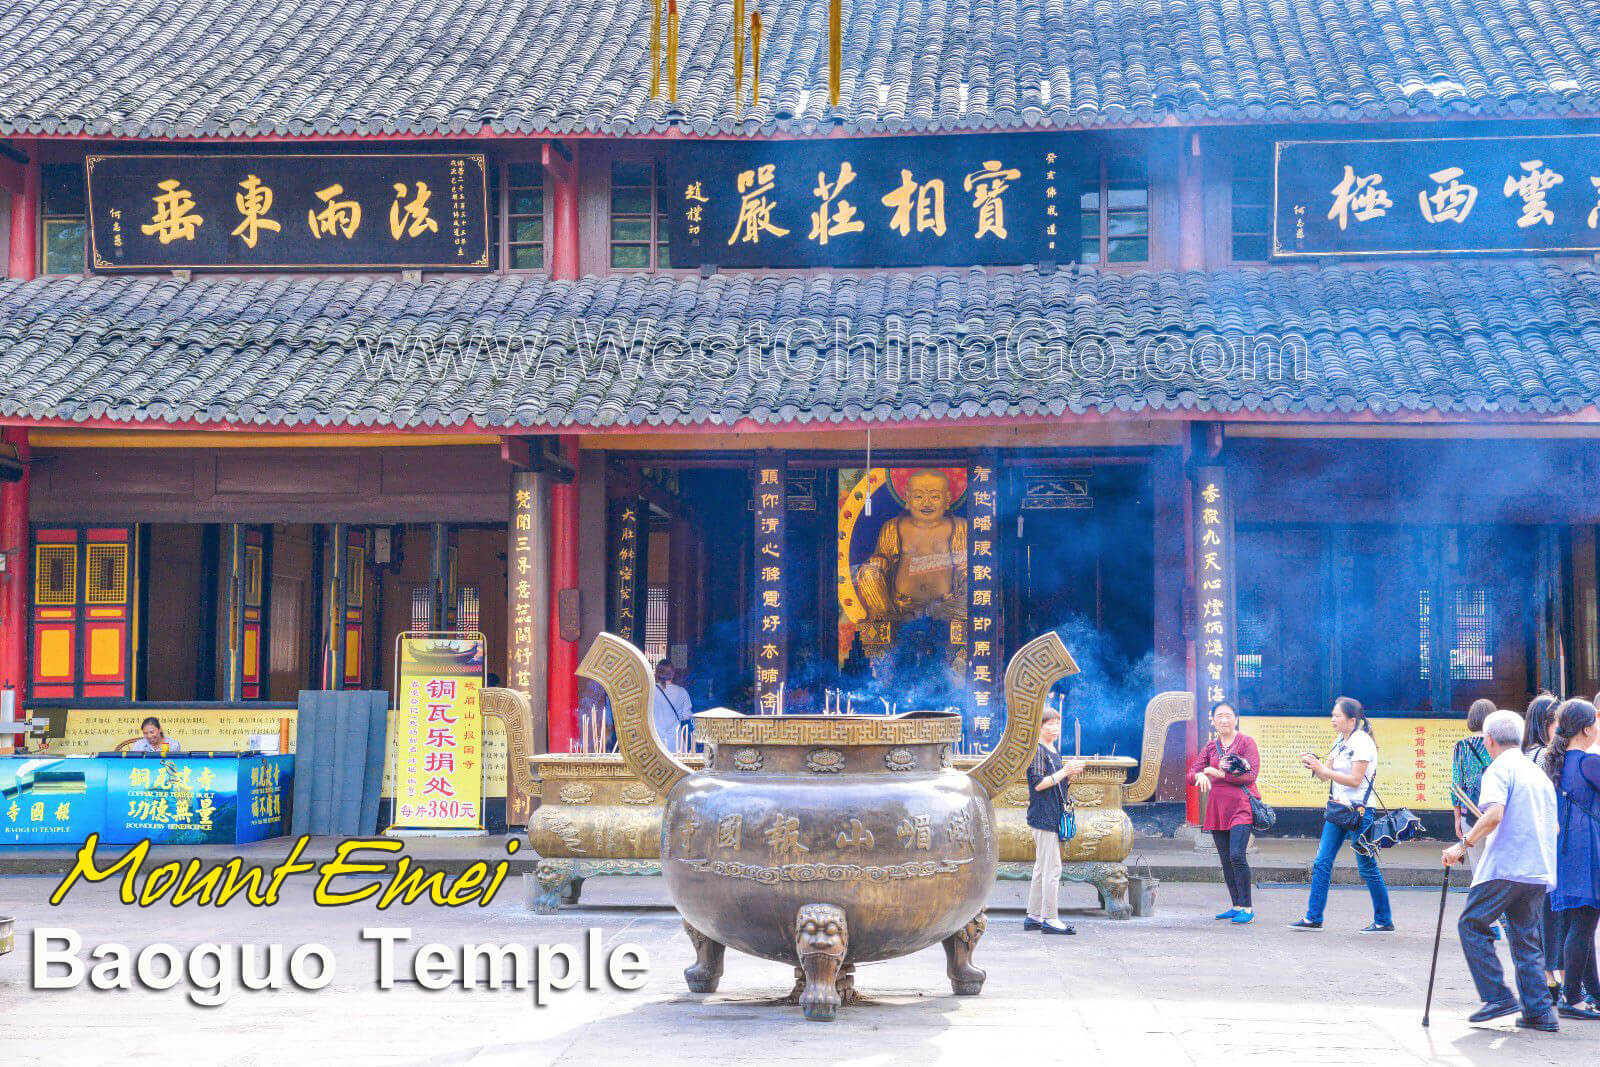 All inclusive 2-Day Panda+Buddha+Mount Emei Tour plus temple stay experience